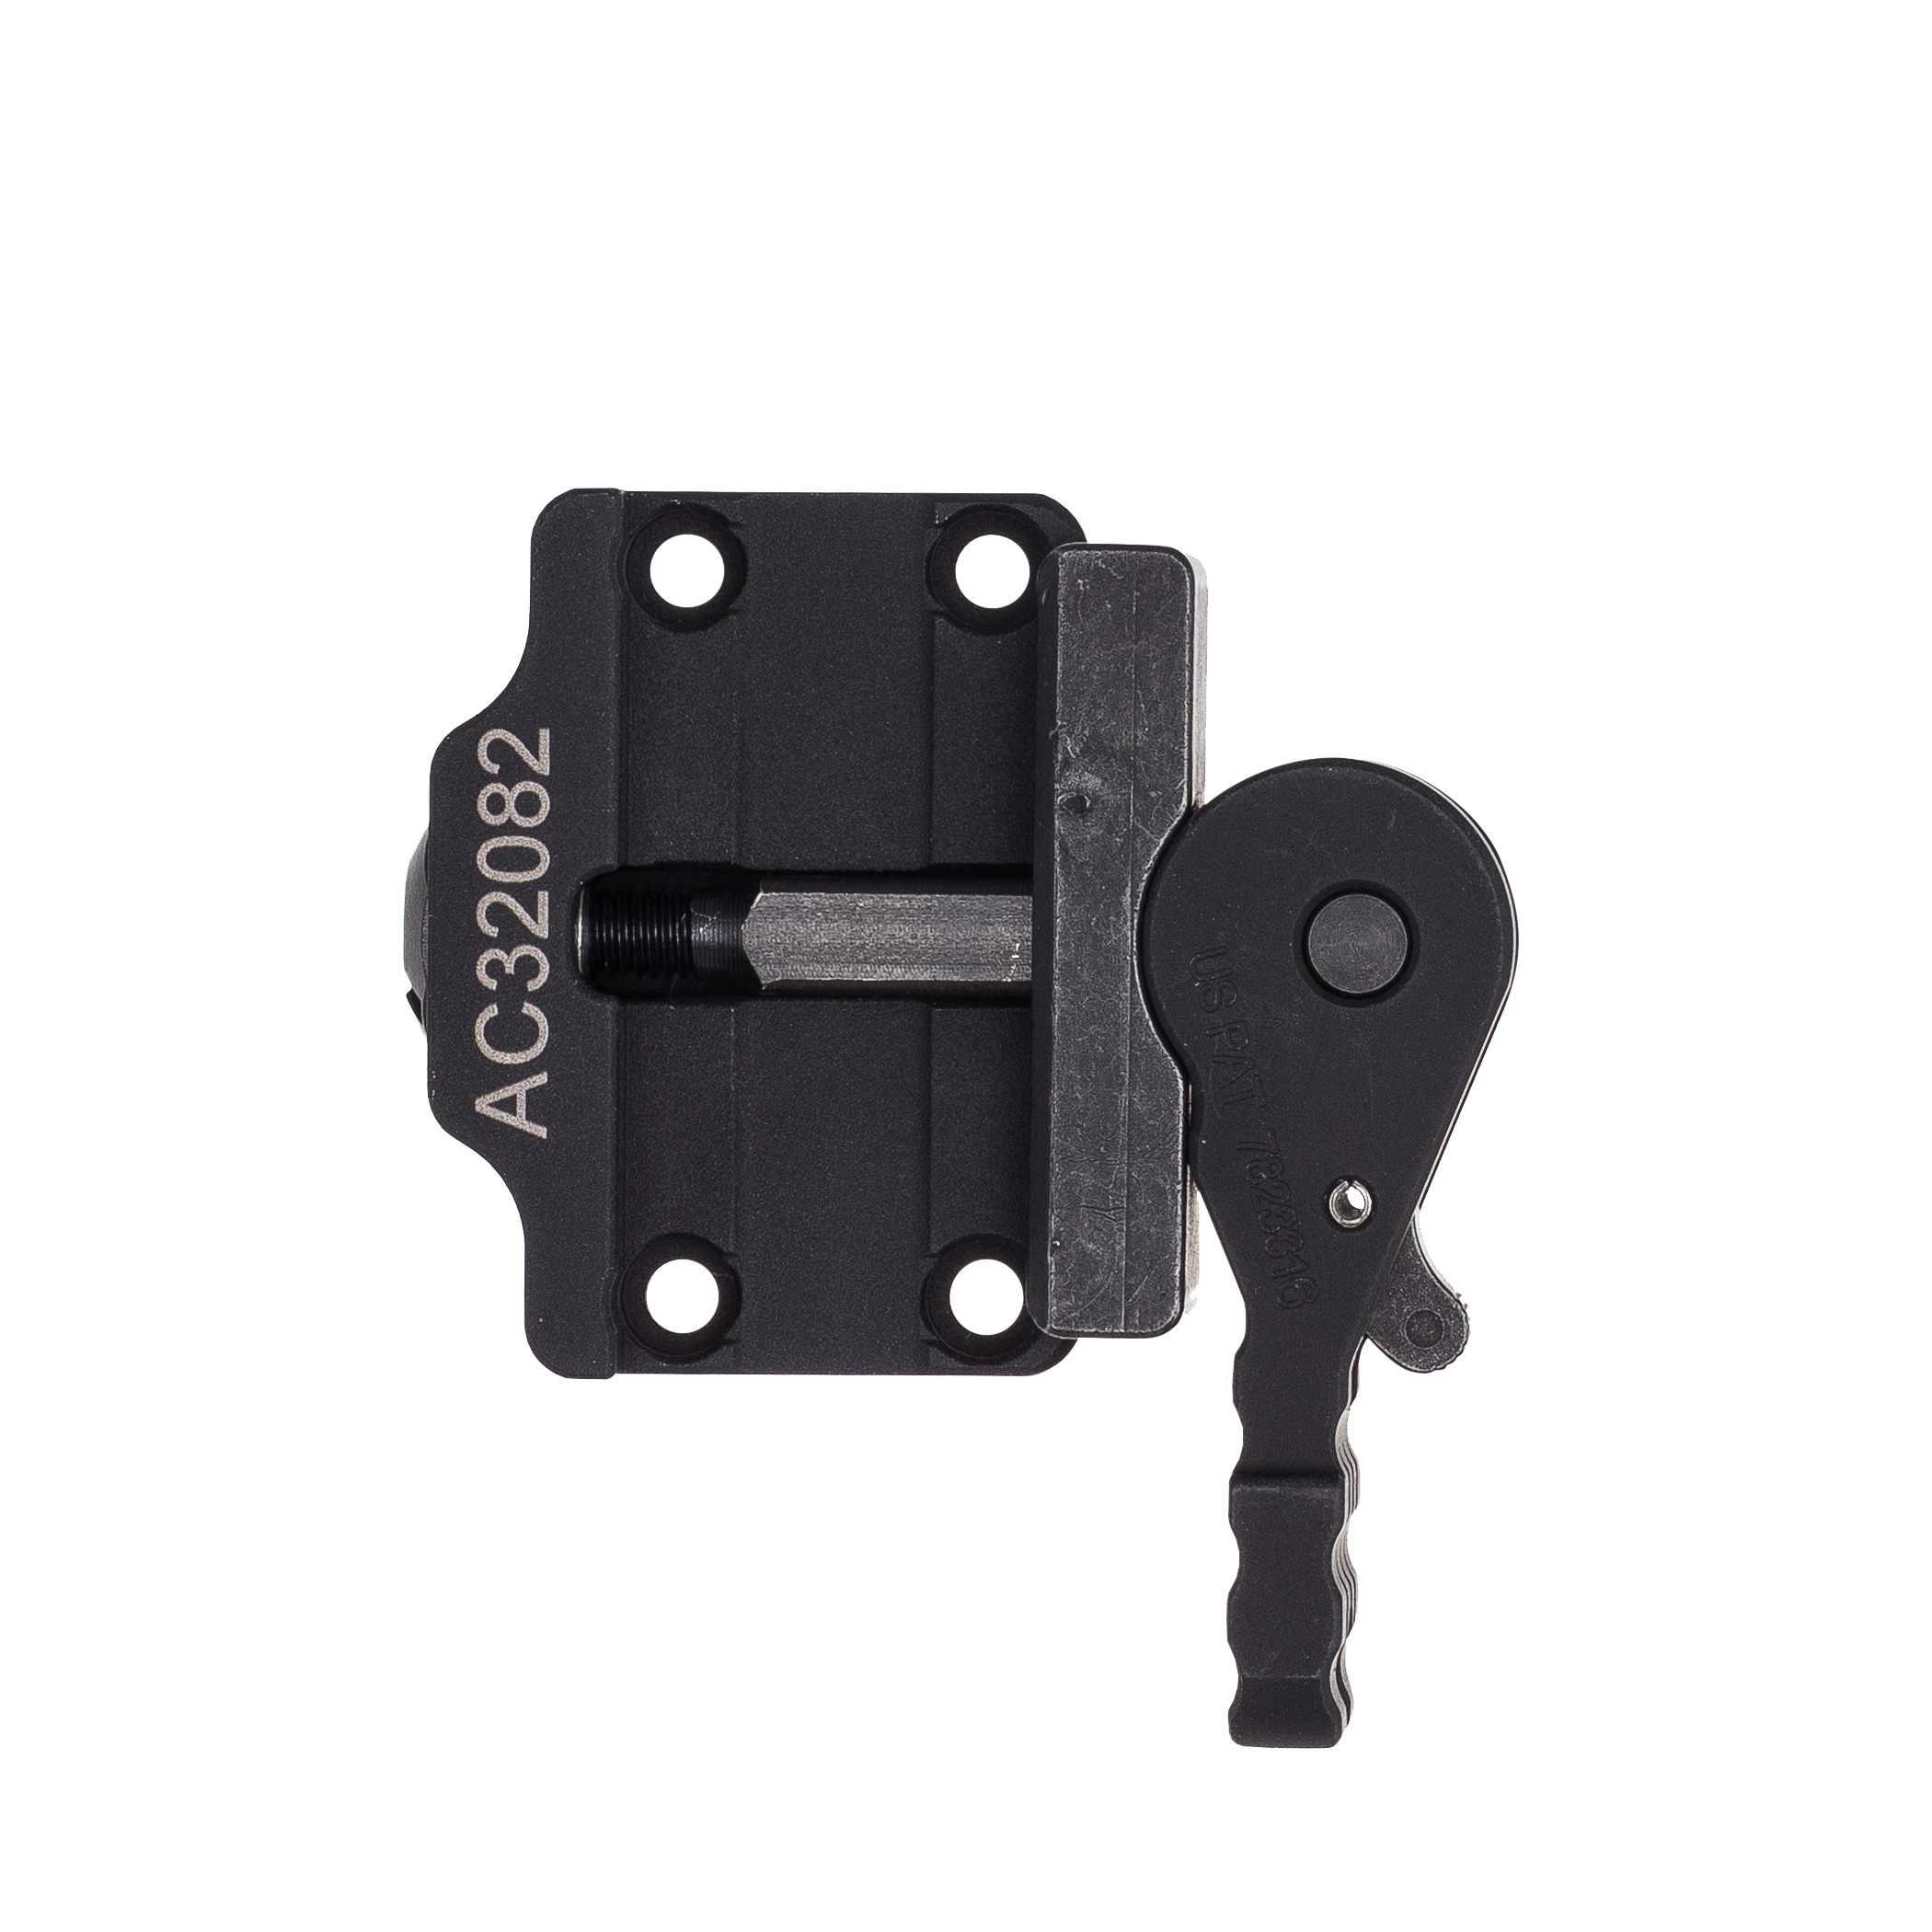 Mounting clip quick release. Trijicon mro levered low